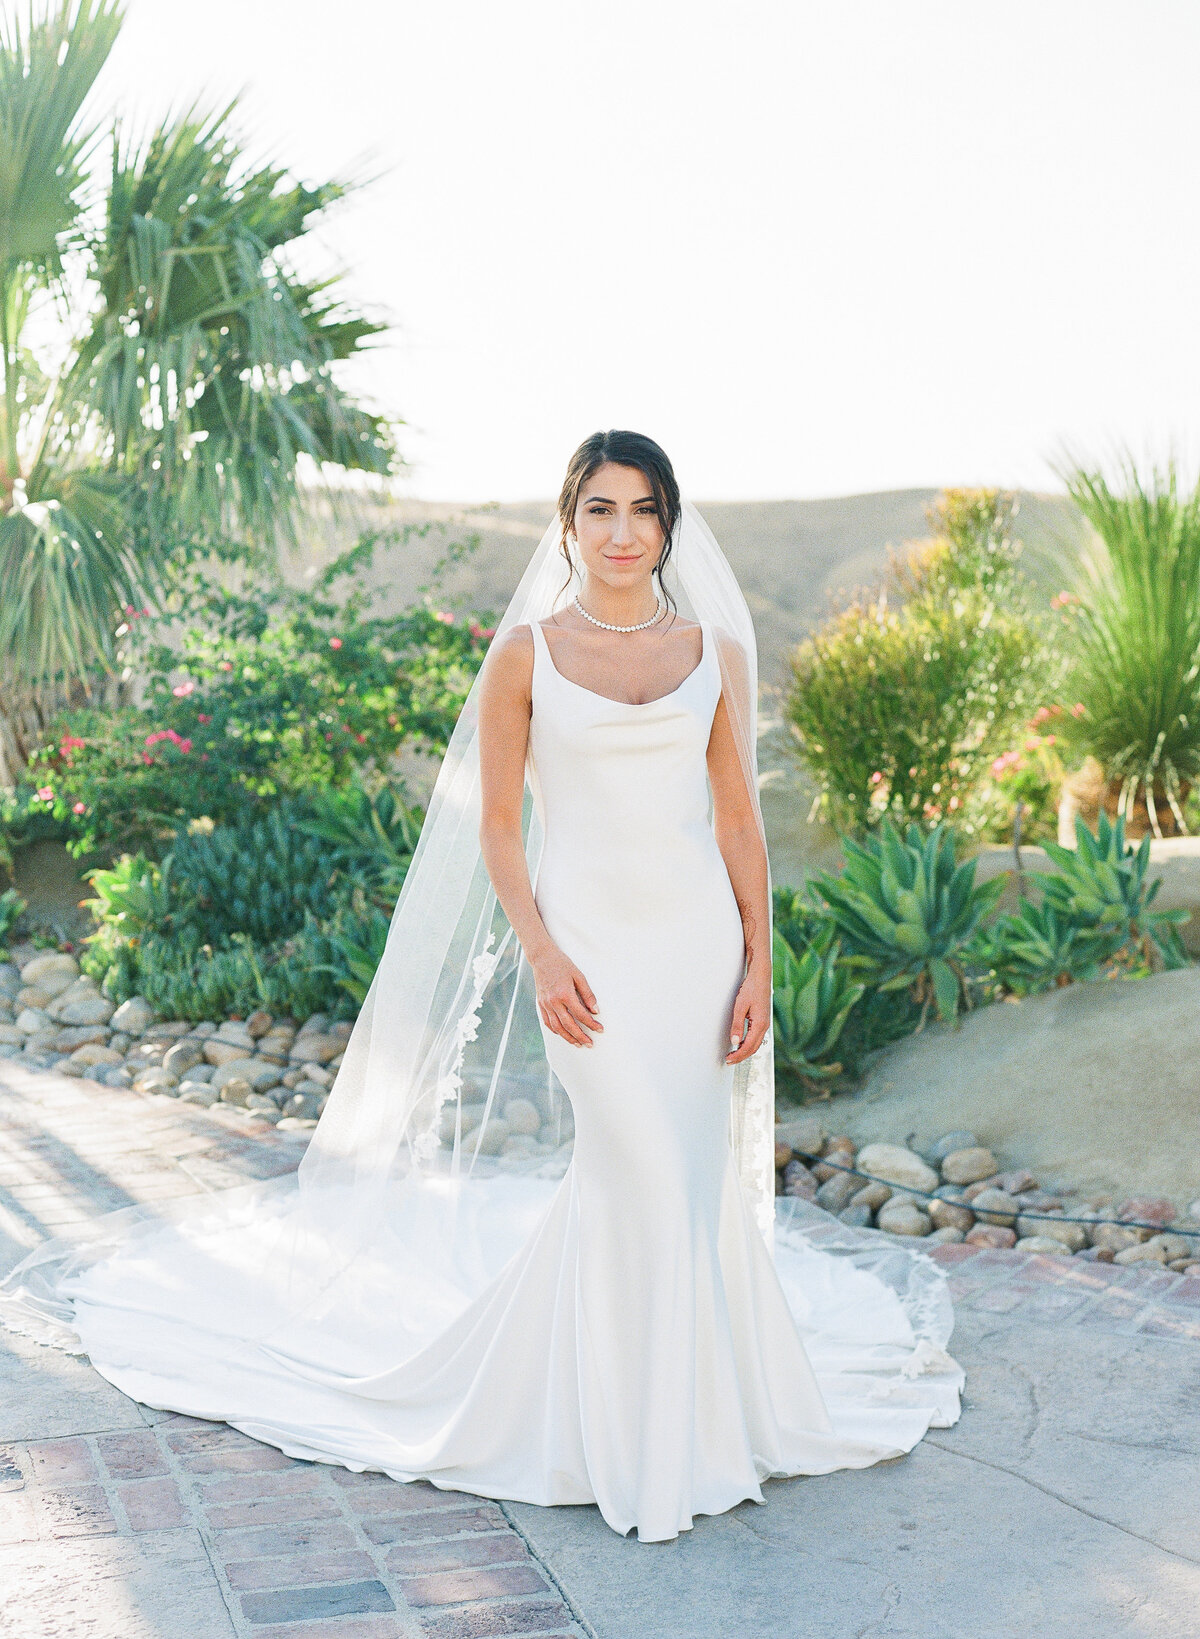 sasha-aneesh-wedding-bride-groom-armenian-144